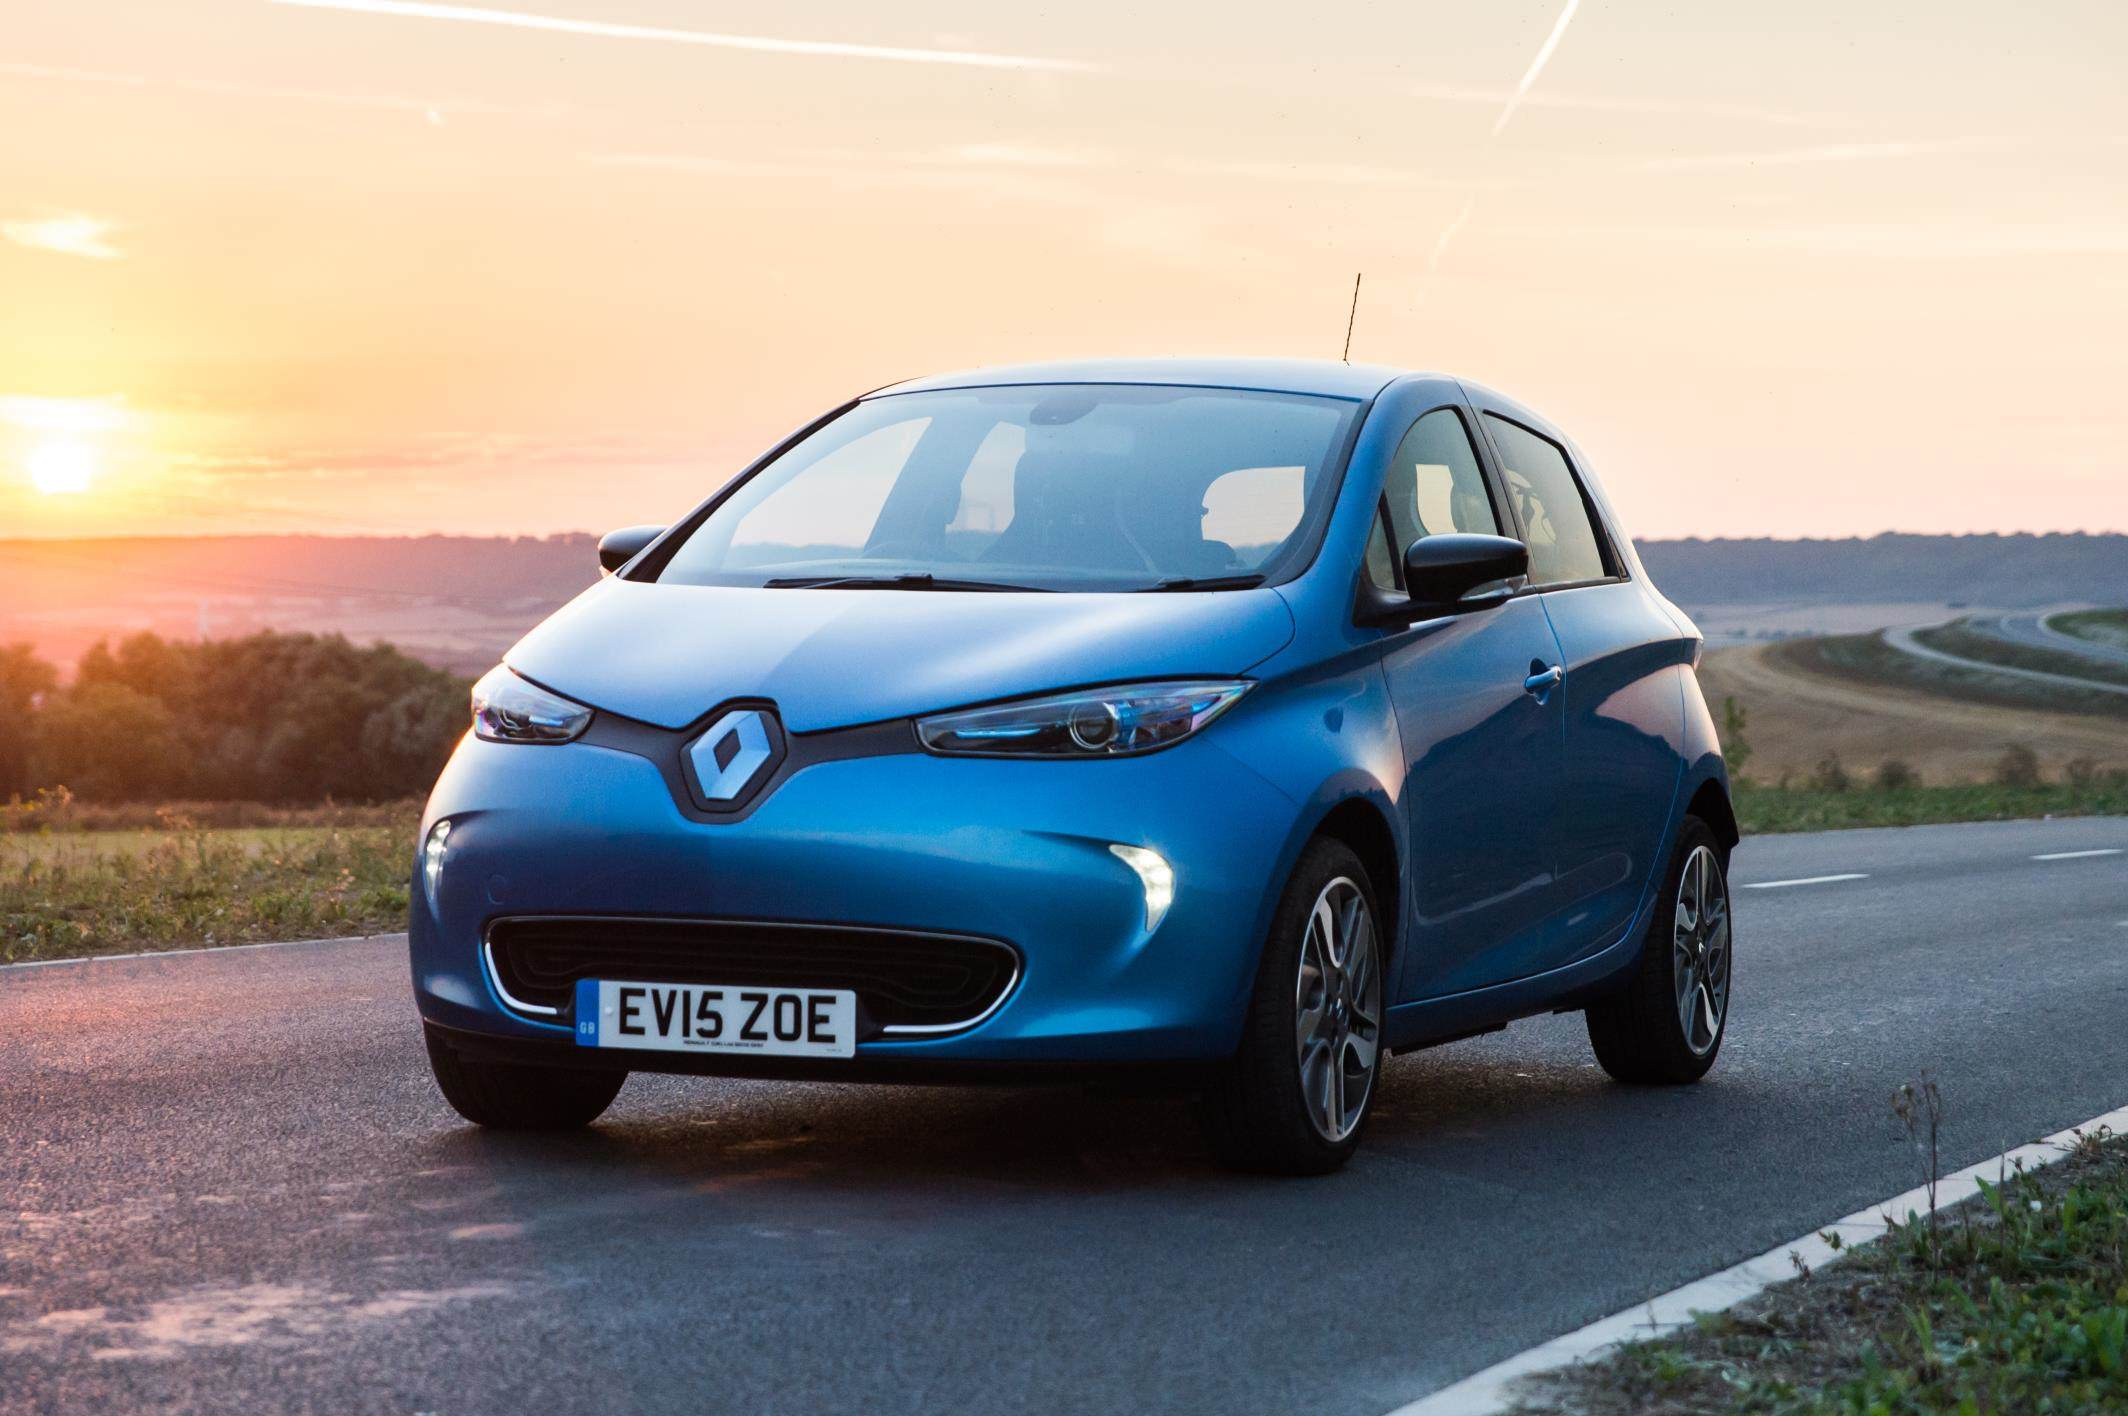 image of a blue renault zoe car exterior